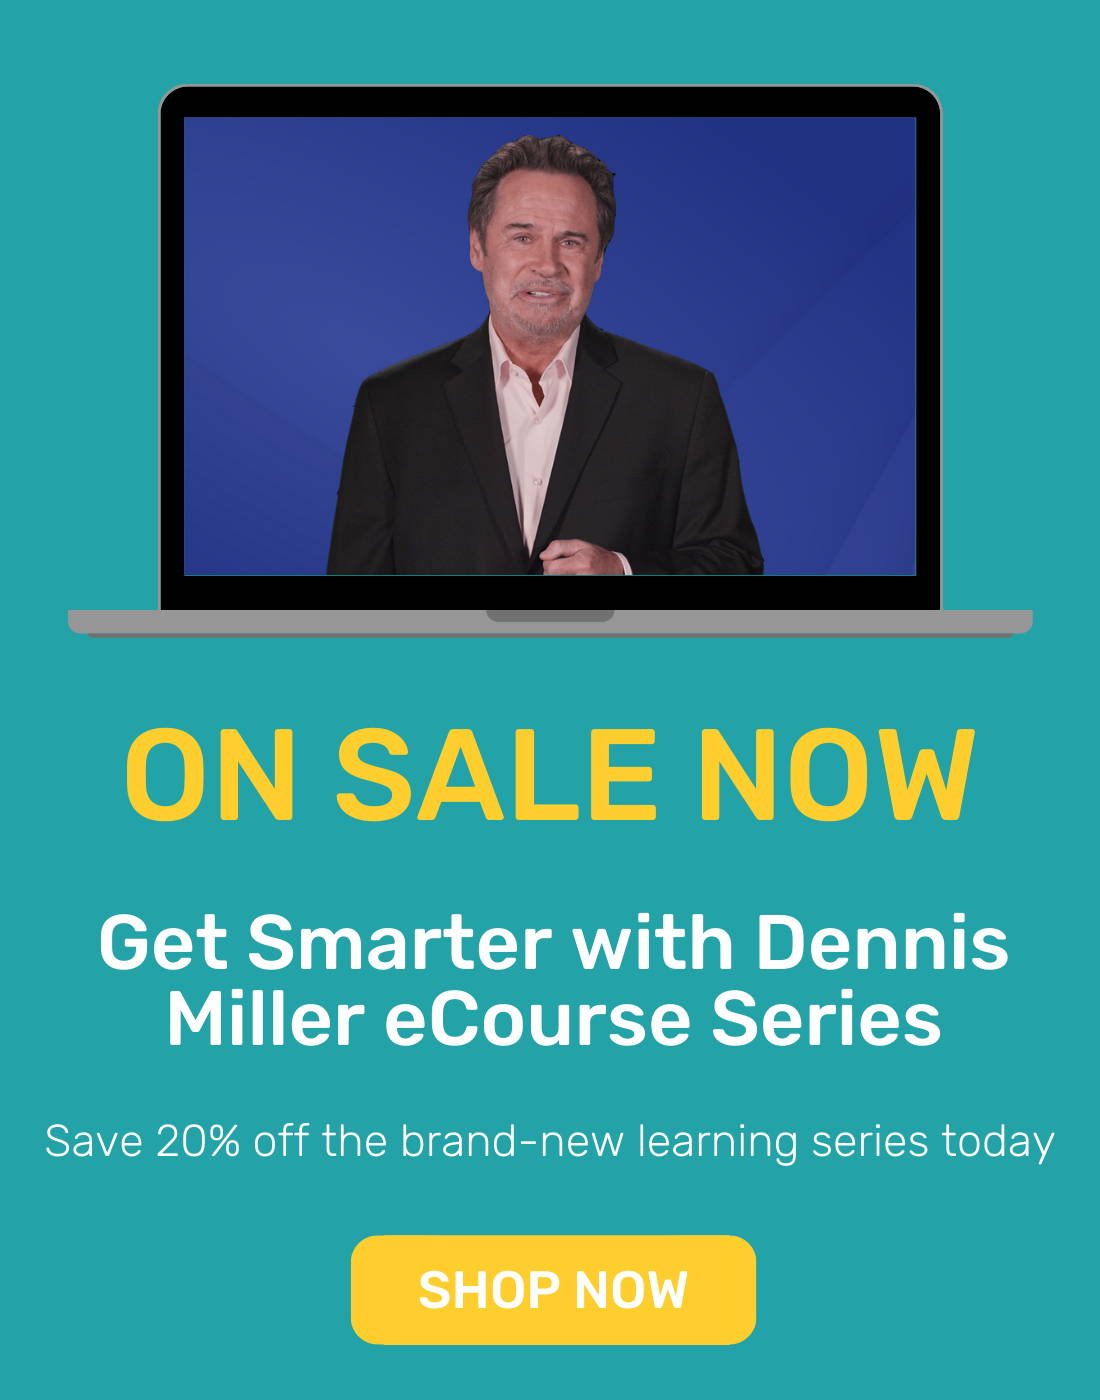 Get Smarter with Dennis Miller series now on sale